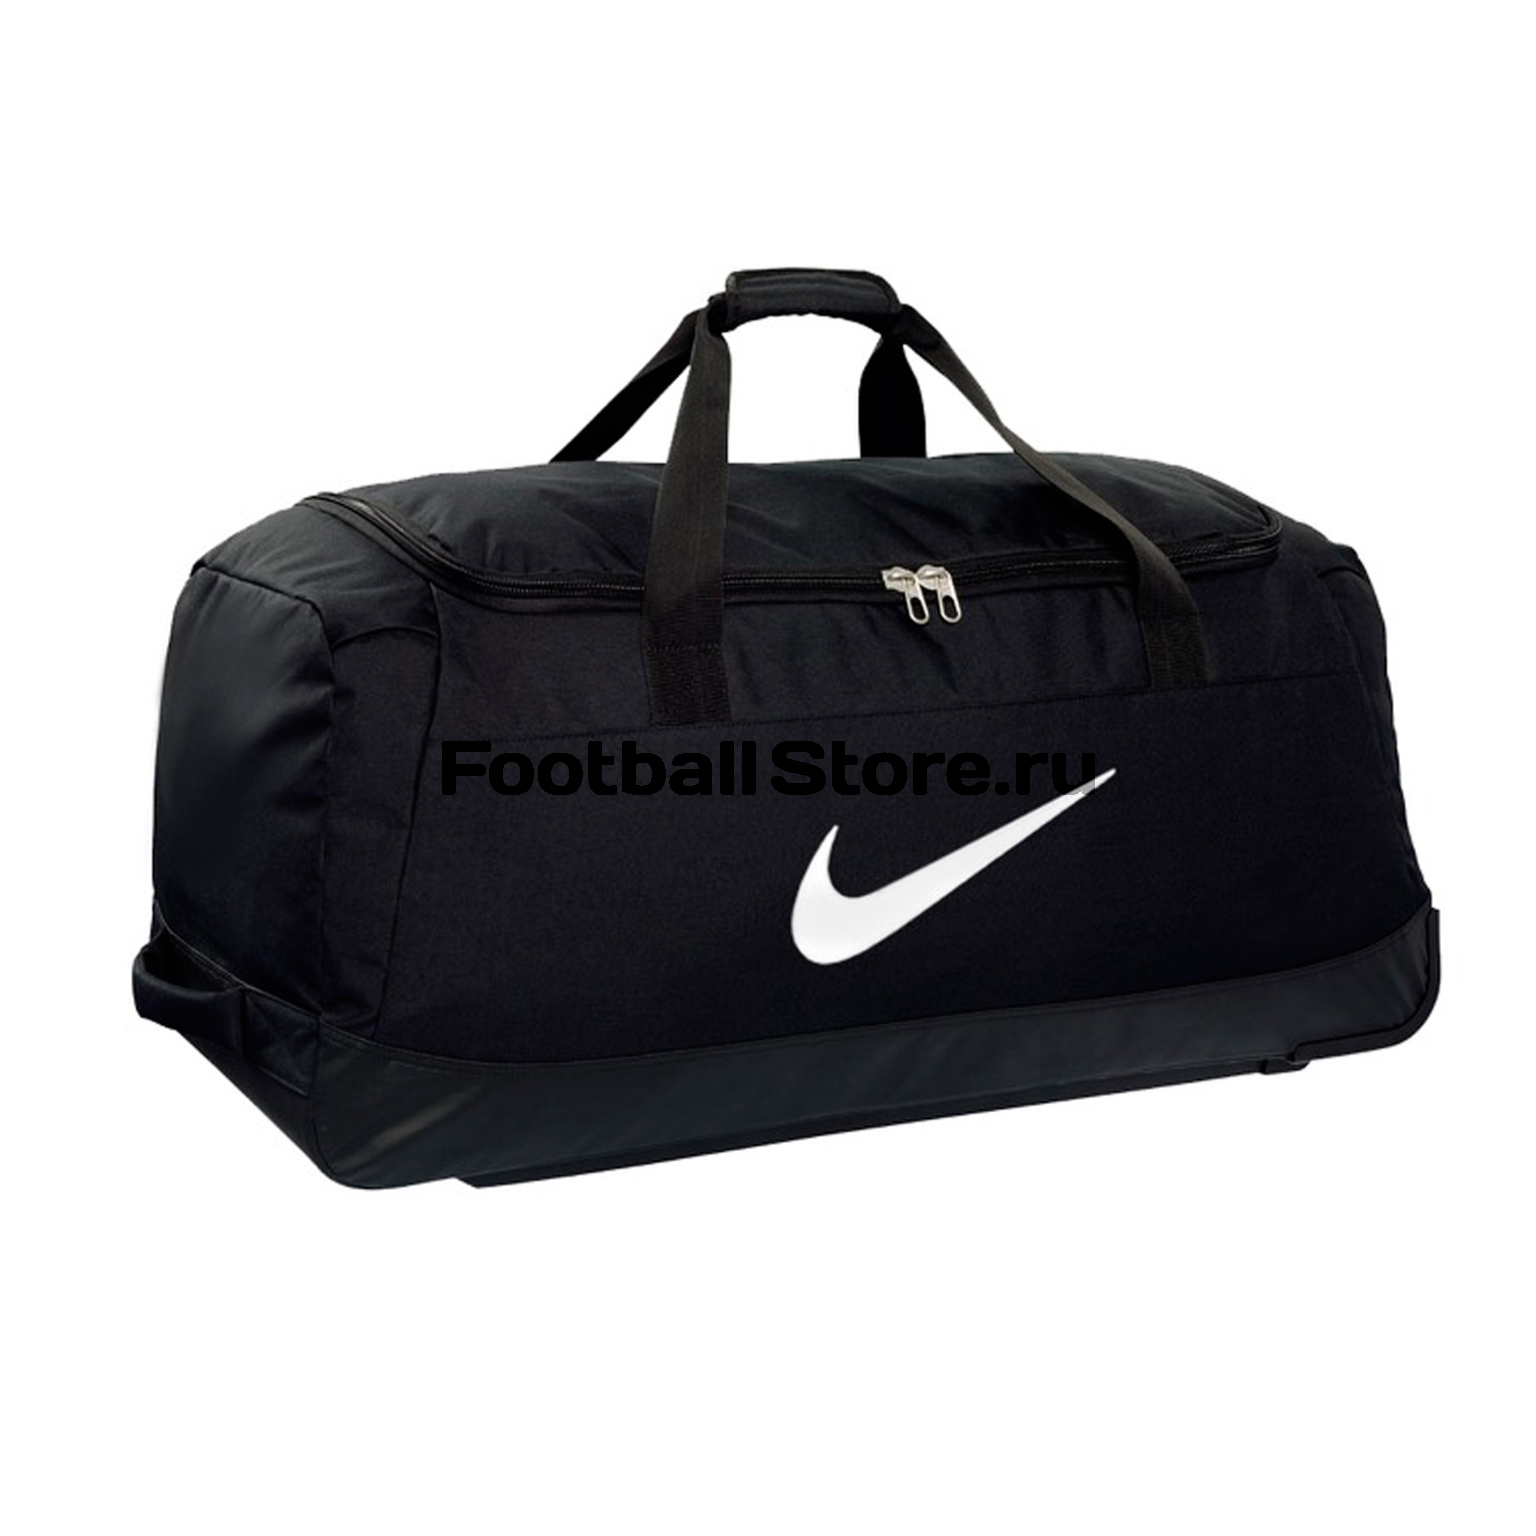 Сумка Nike Club Team SWSH Roller Bag BA5199-010